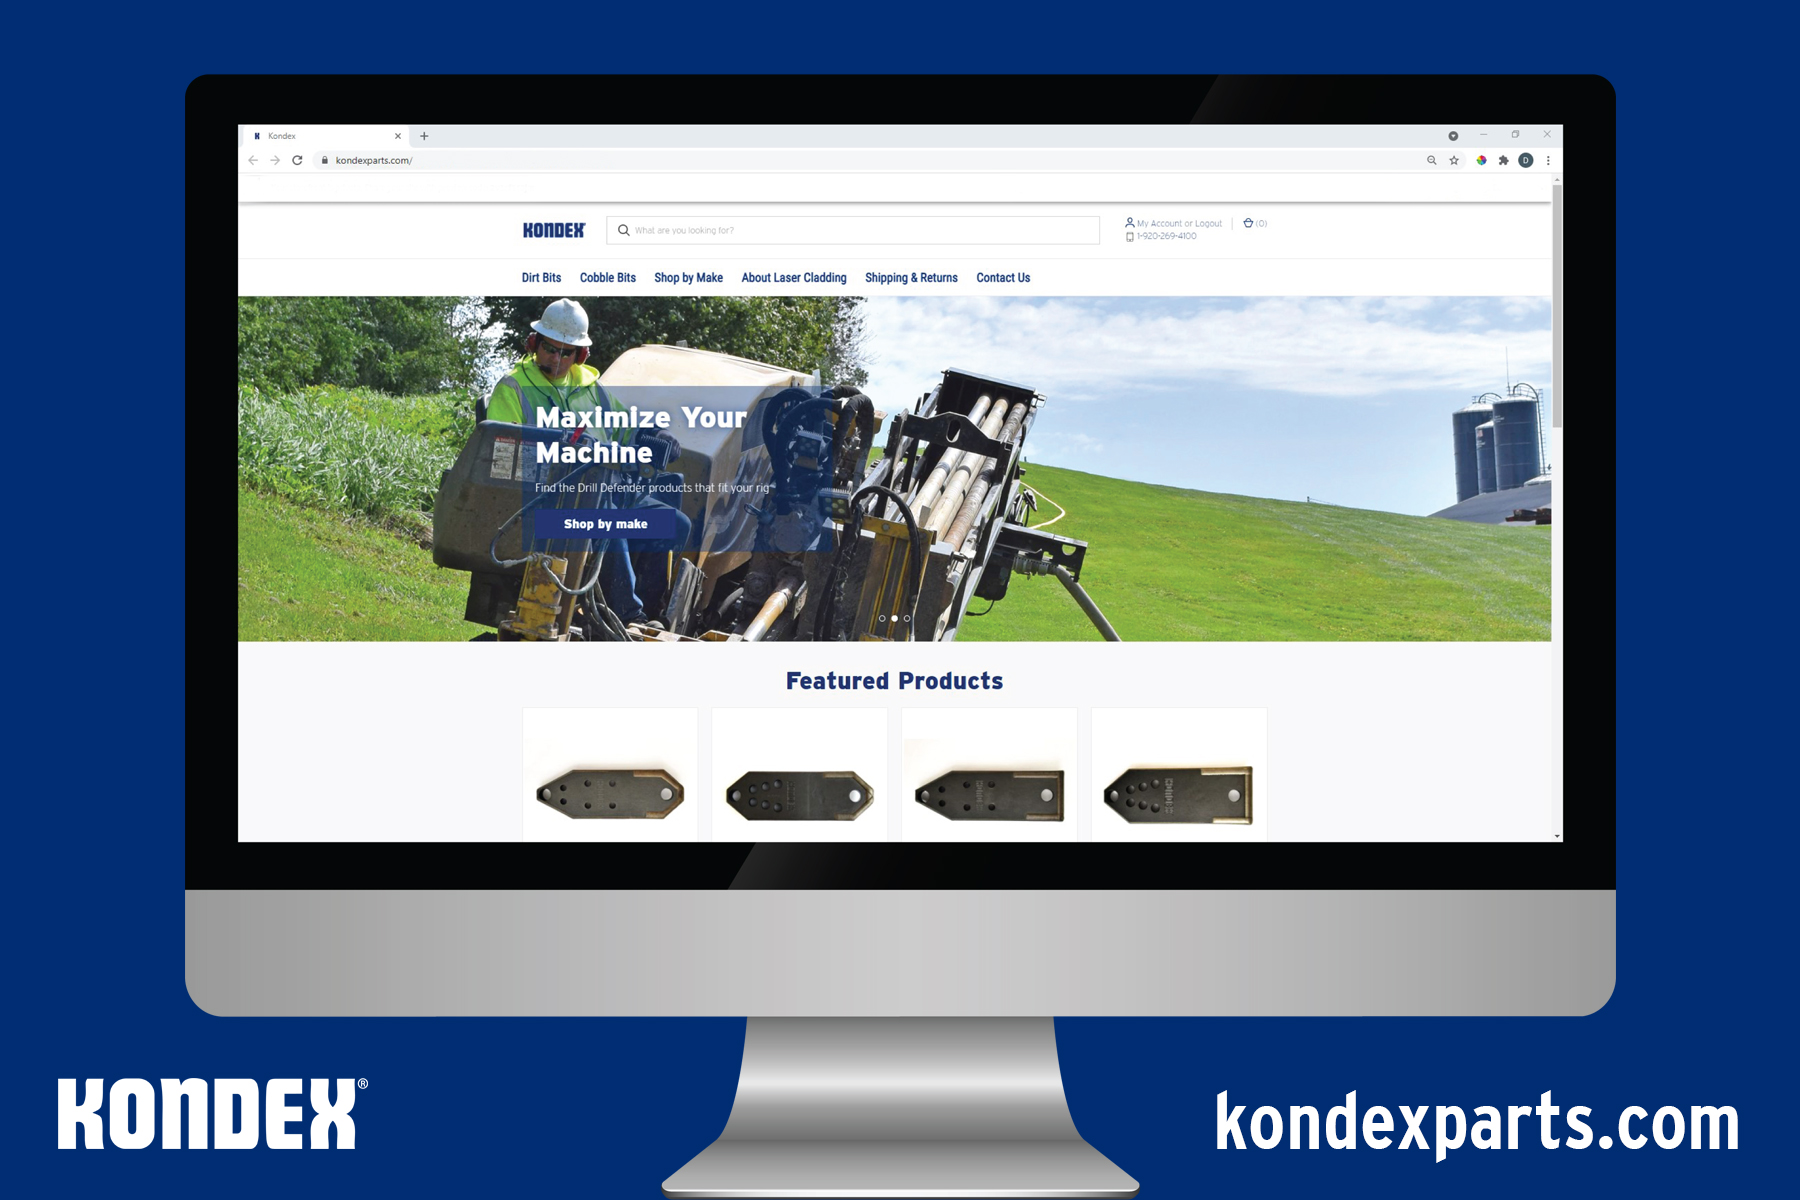 Computer monitor with kondexparts.com shown